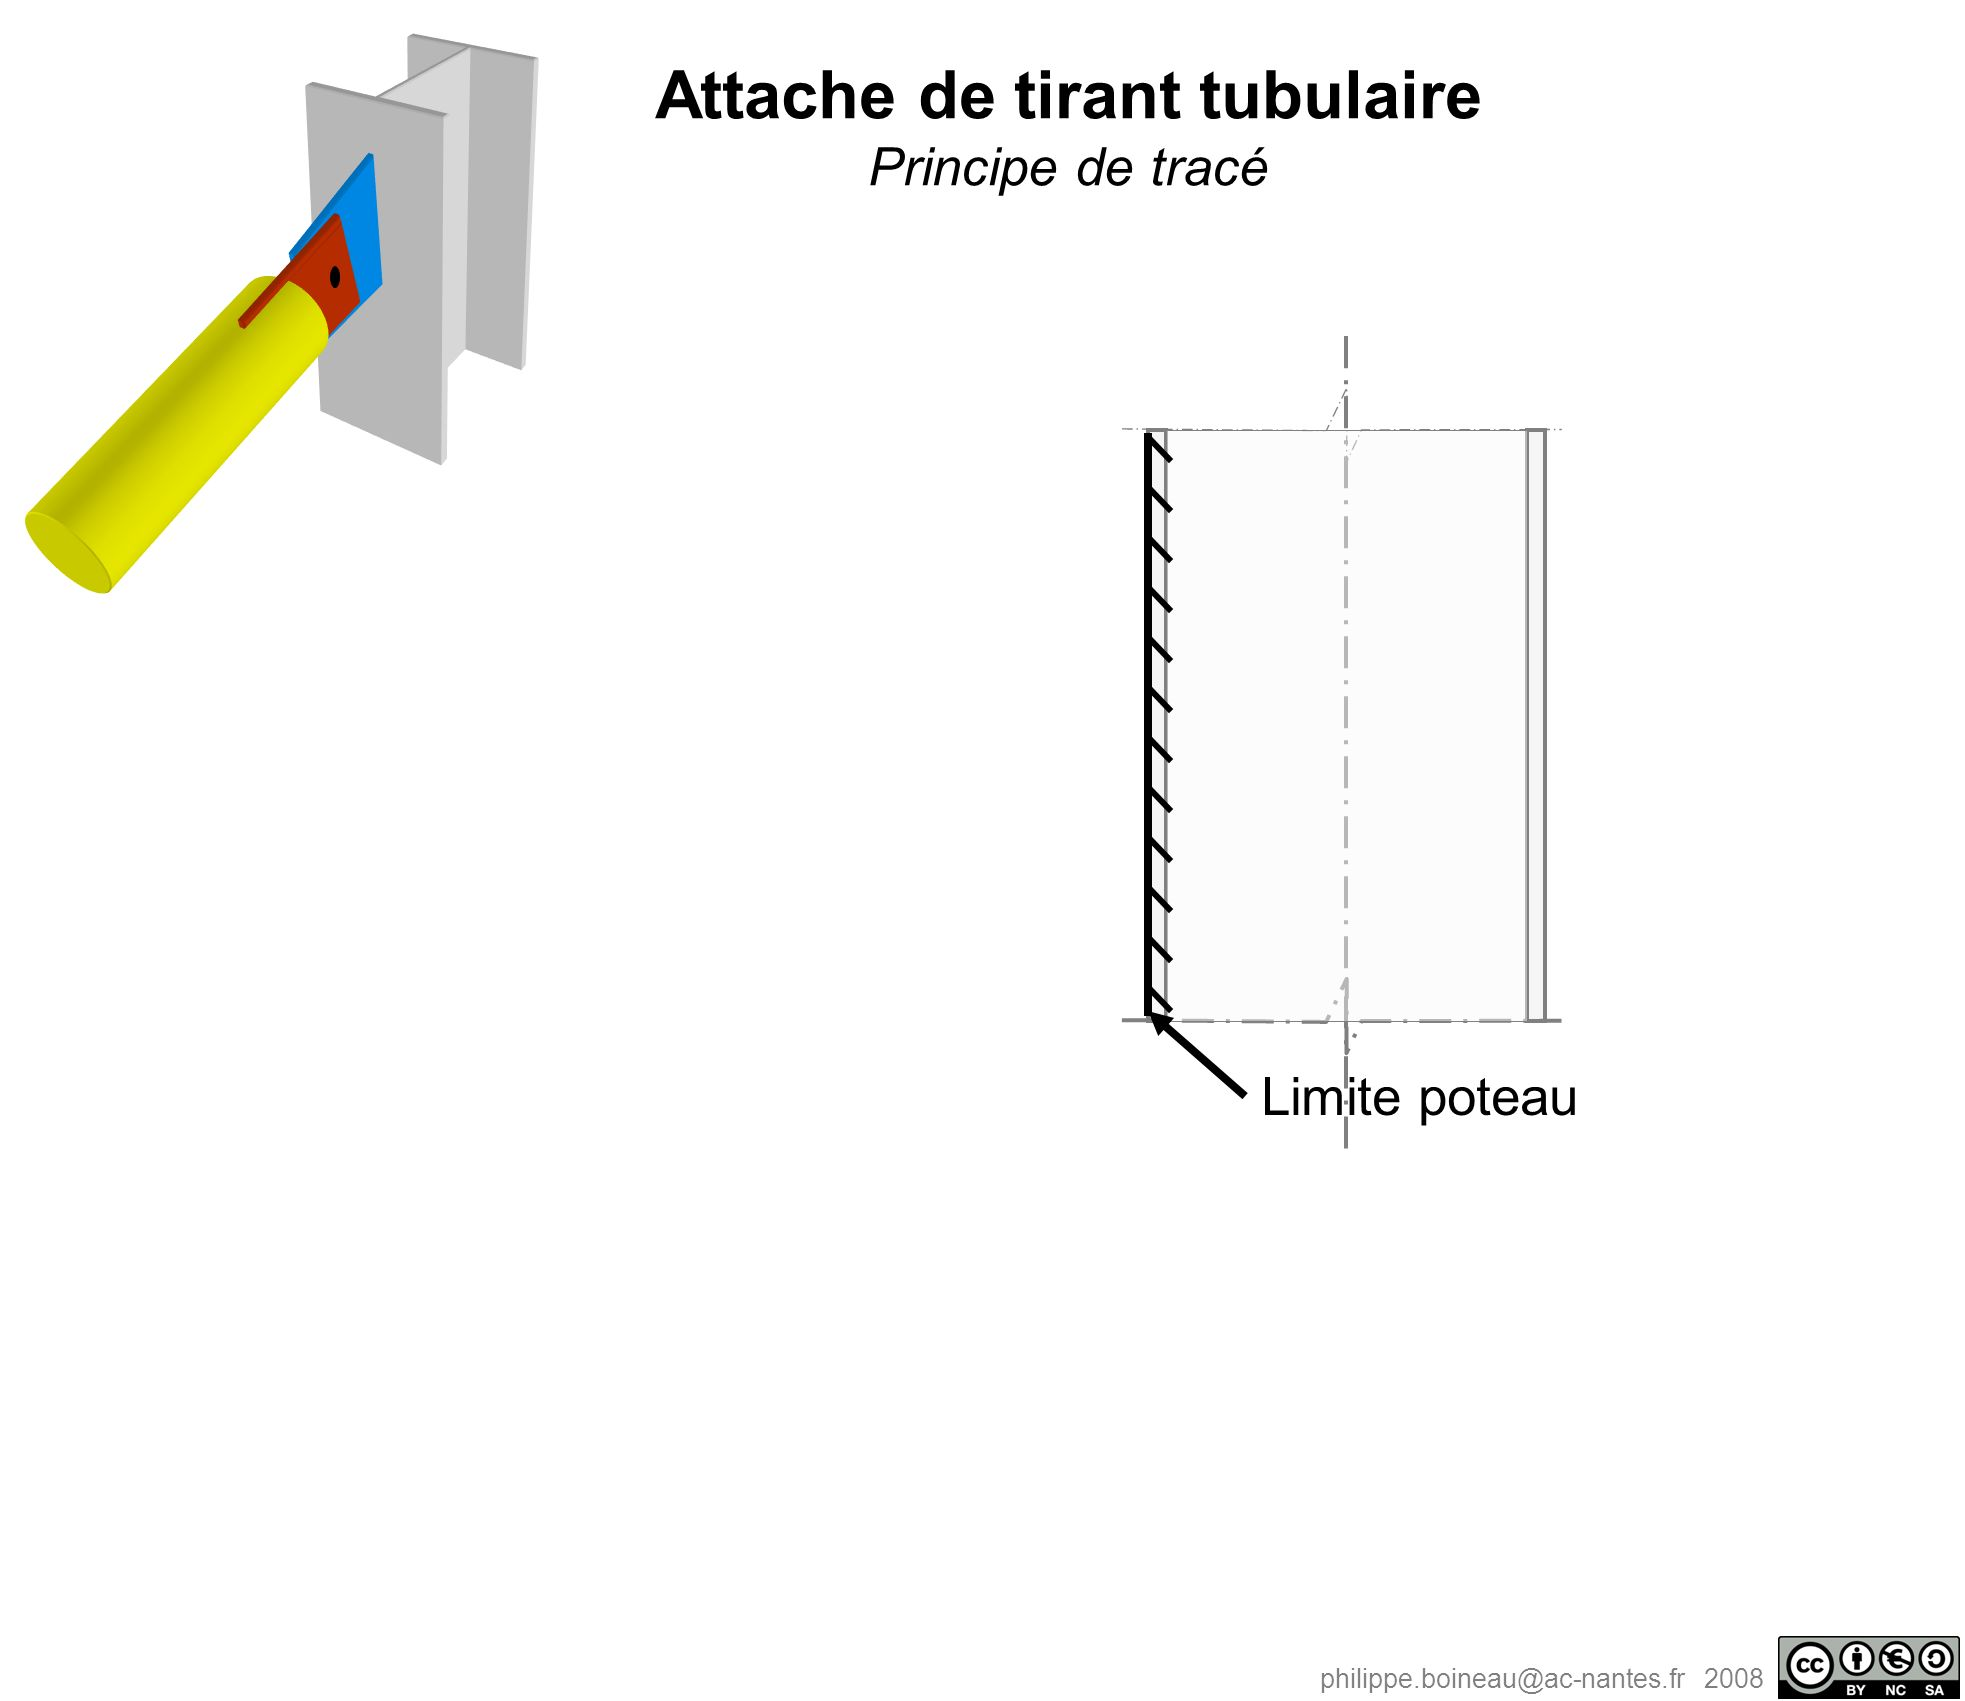 Attache de tirant tubulaire